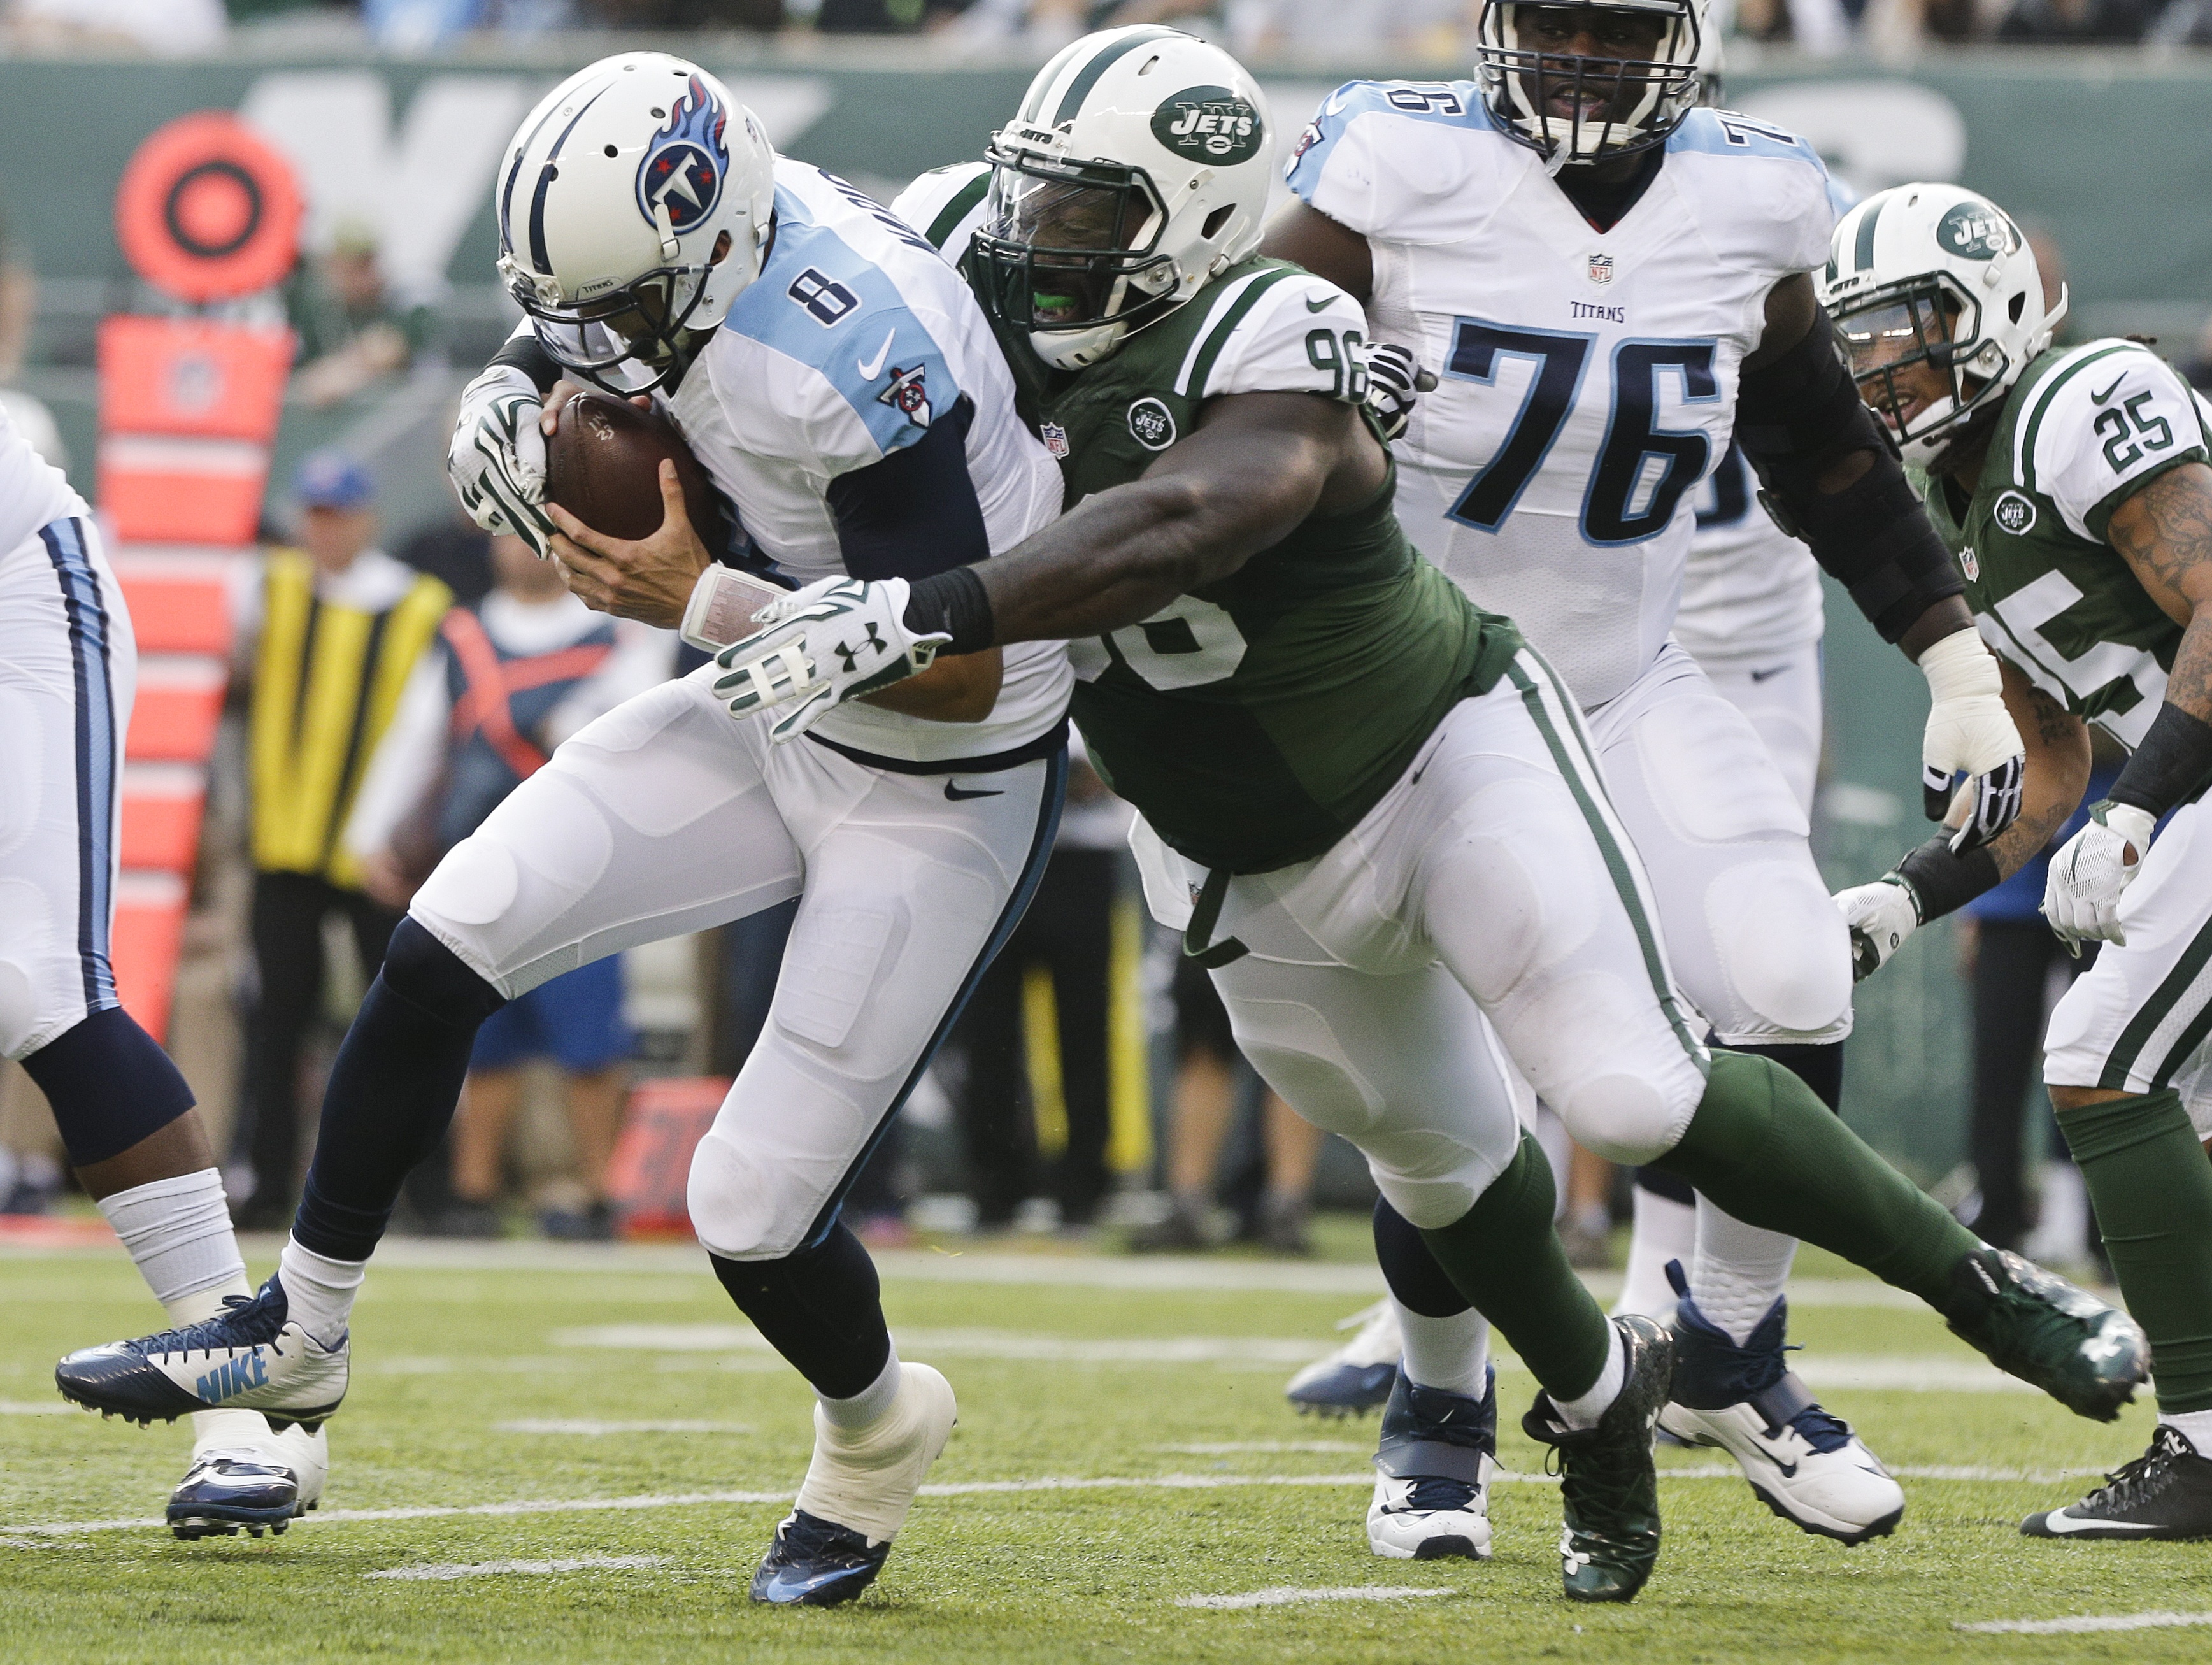 FILe - In this Dec. 13, 2015, file photo, New York Jets defensive end Muhammad Wilkerson (96) sacks Tennessee Titans quarterback Marcus Mariota (8) during the first half of an NFL football game, in East Rutherford, N.J. A person with knowledge of the team